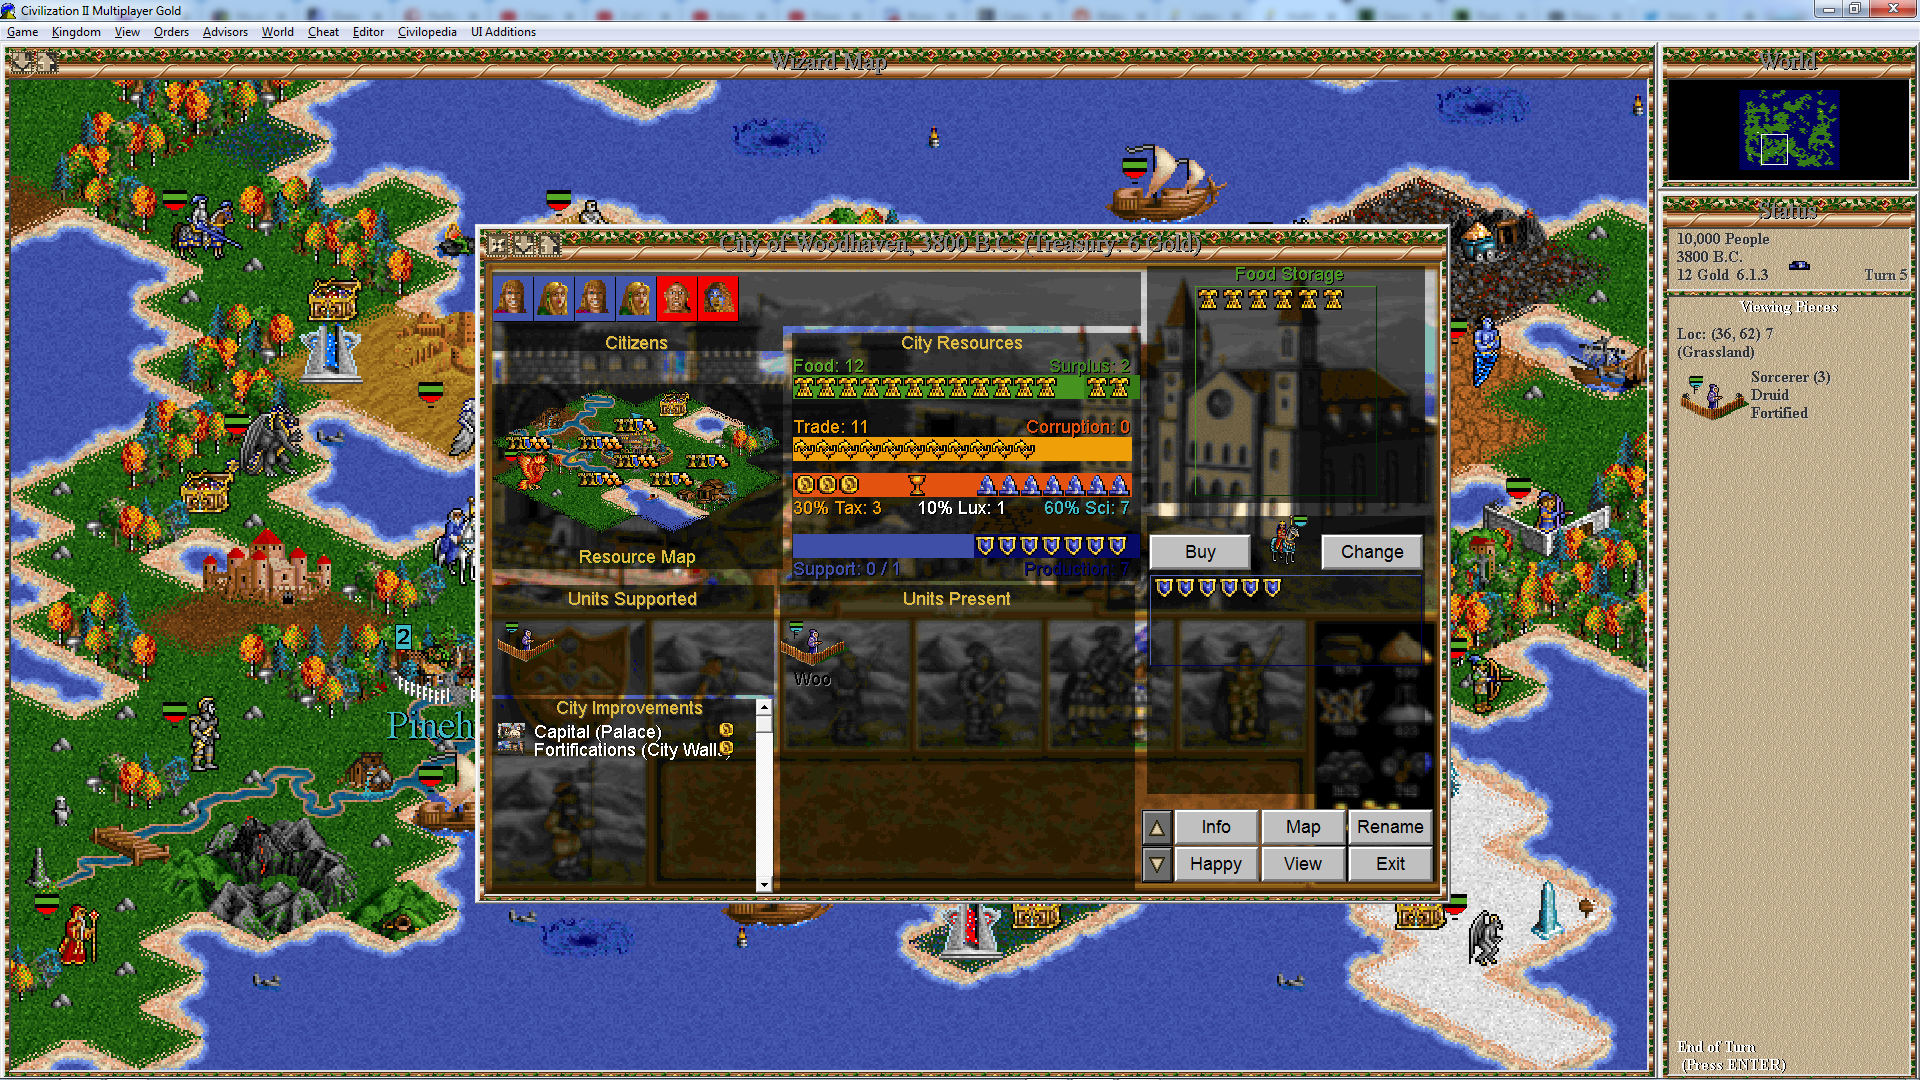 Heroes of Might & Magic 2 Civilization 2 Mod! Image19-png